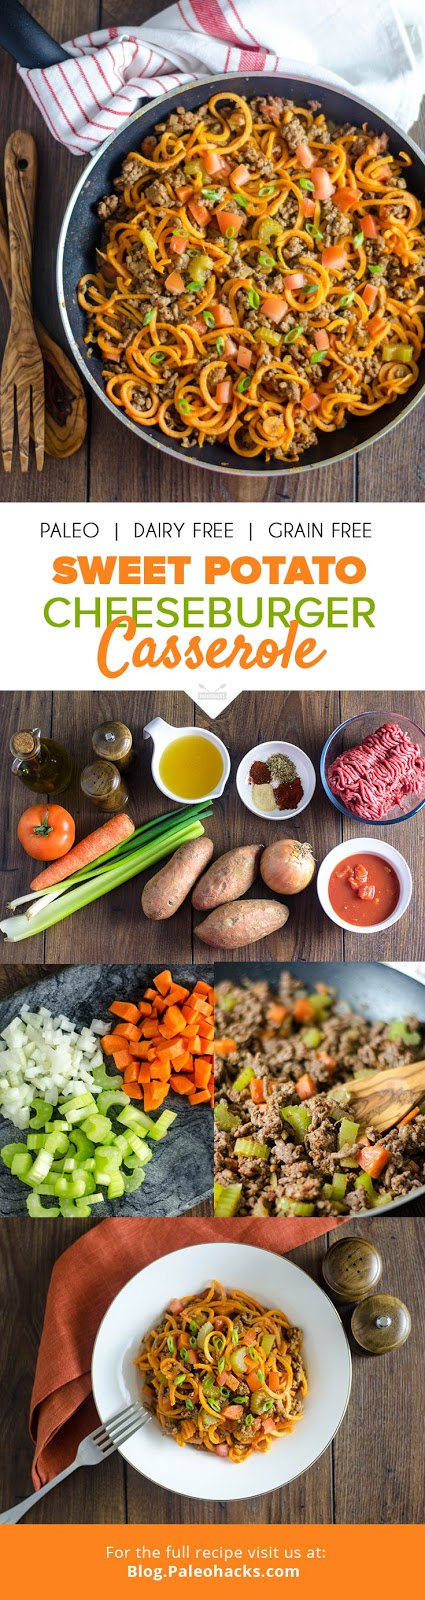 Sweet Potato Cheeseburger Casserole